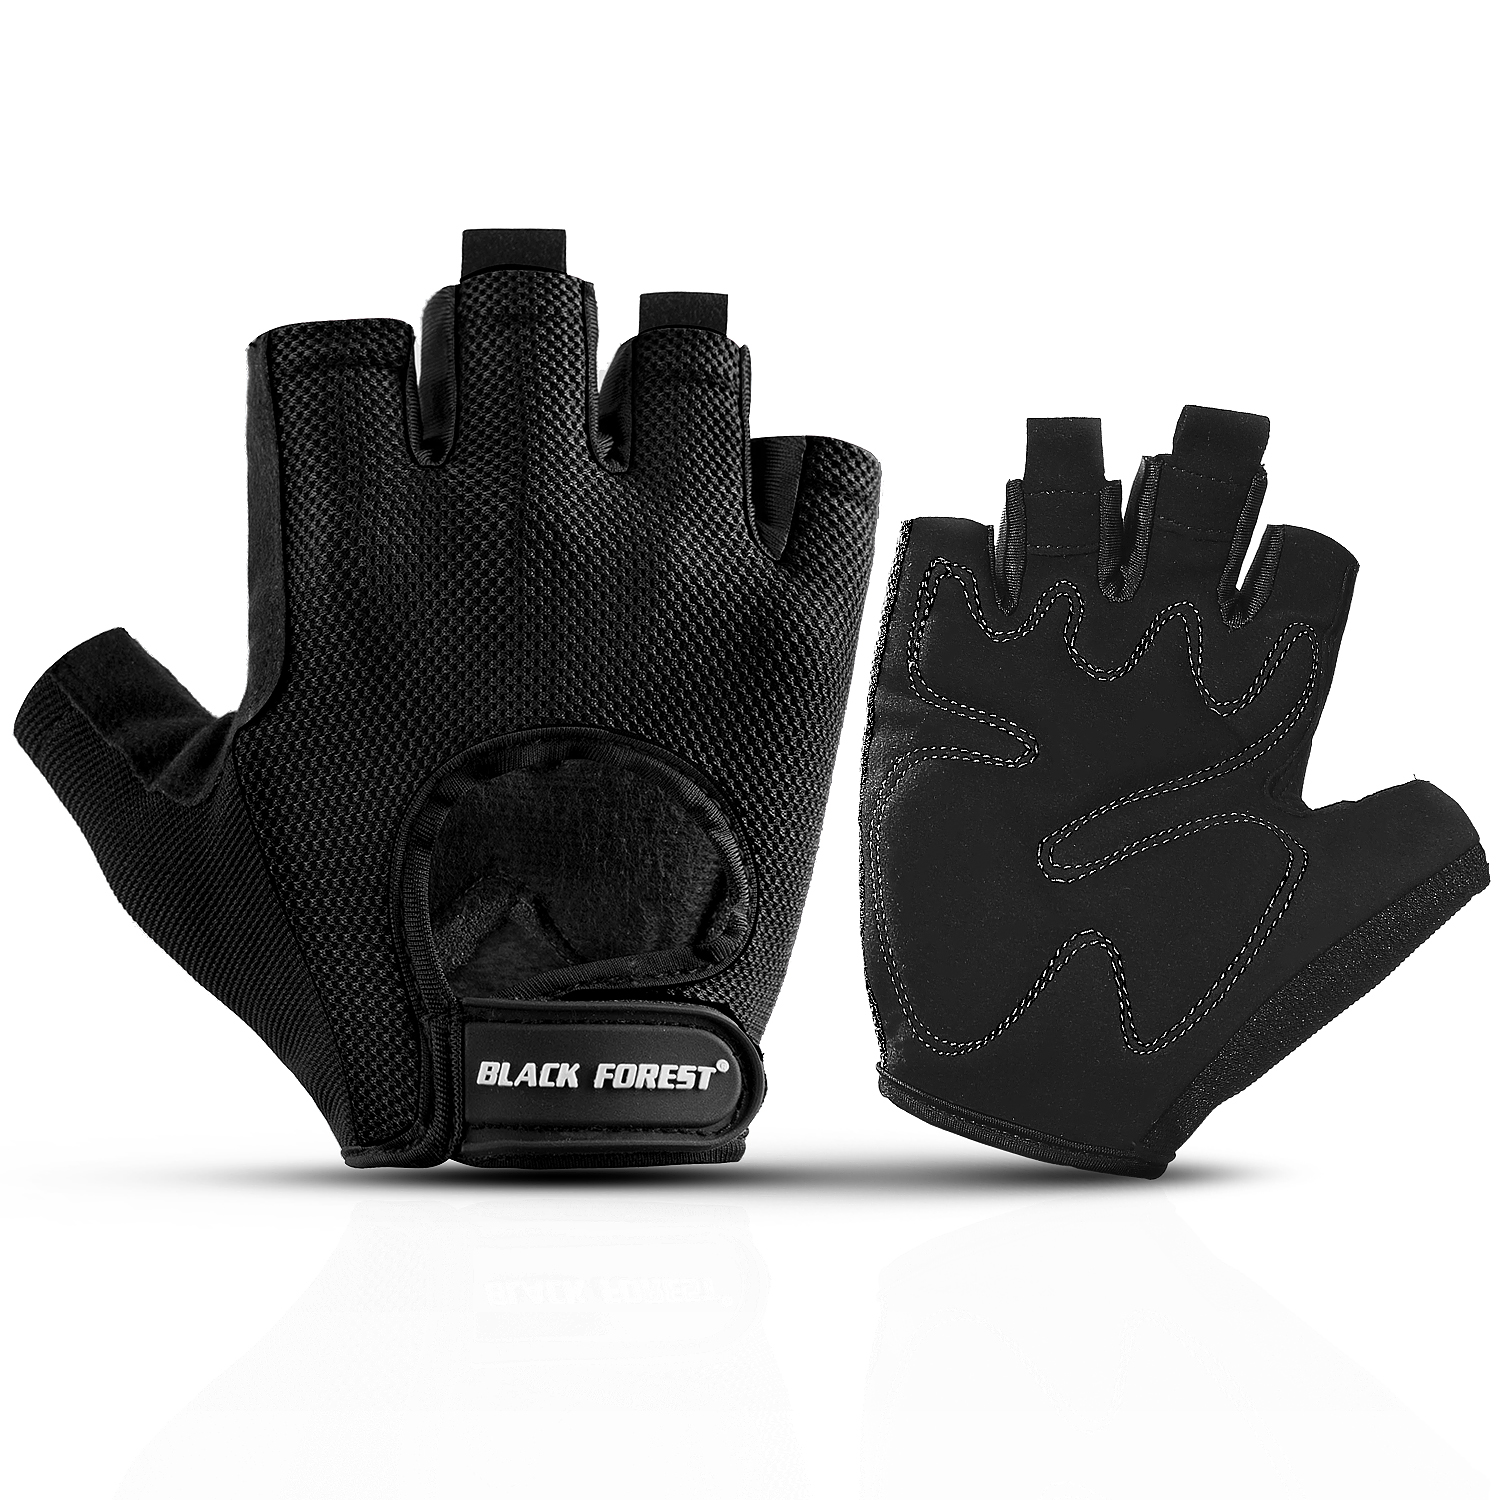 Fingerless Leather Cycle Biker Gym Gloves Cycling Body building weight lifting Black